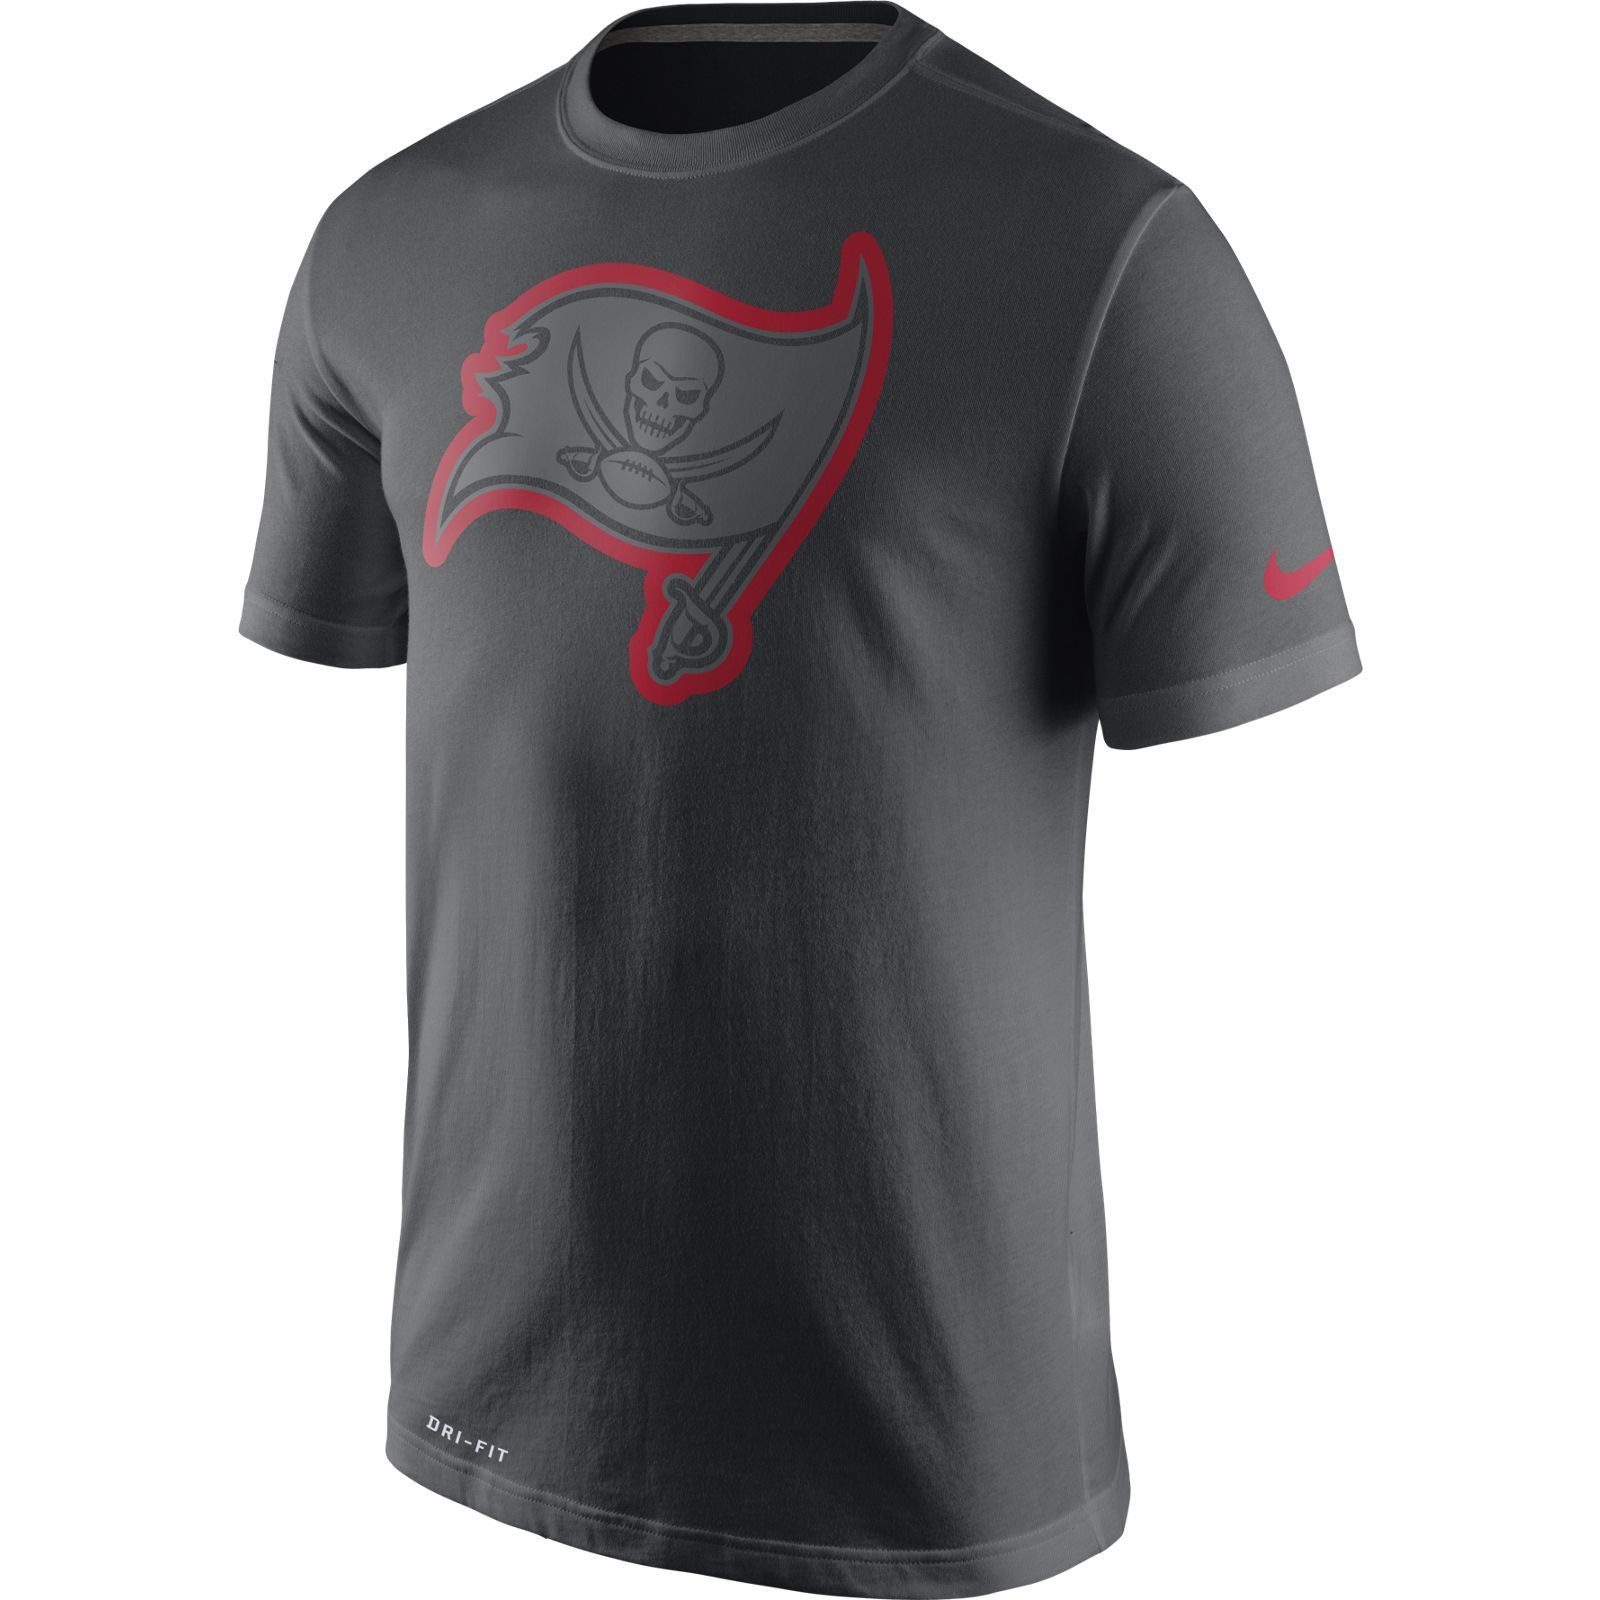 online store 4e0ee 61e0f Buccaneers Men's Team Travel Tee by Nike - Tampa Bay ...